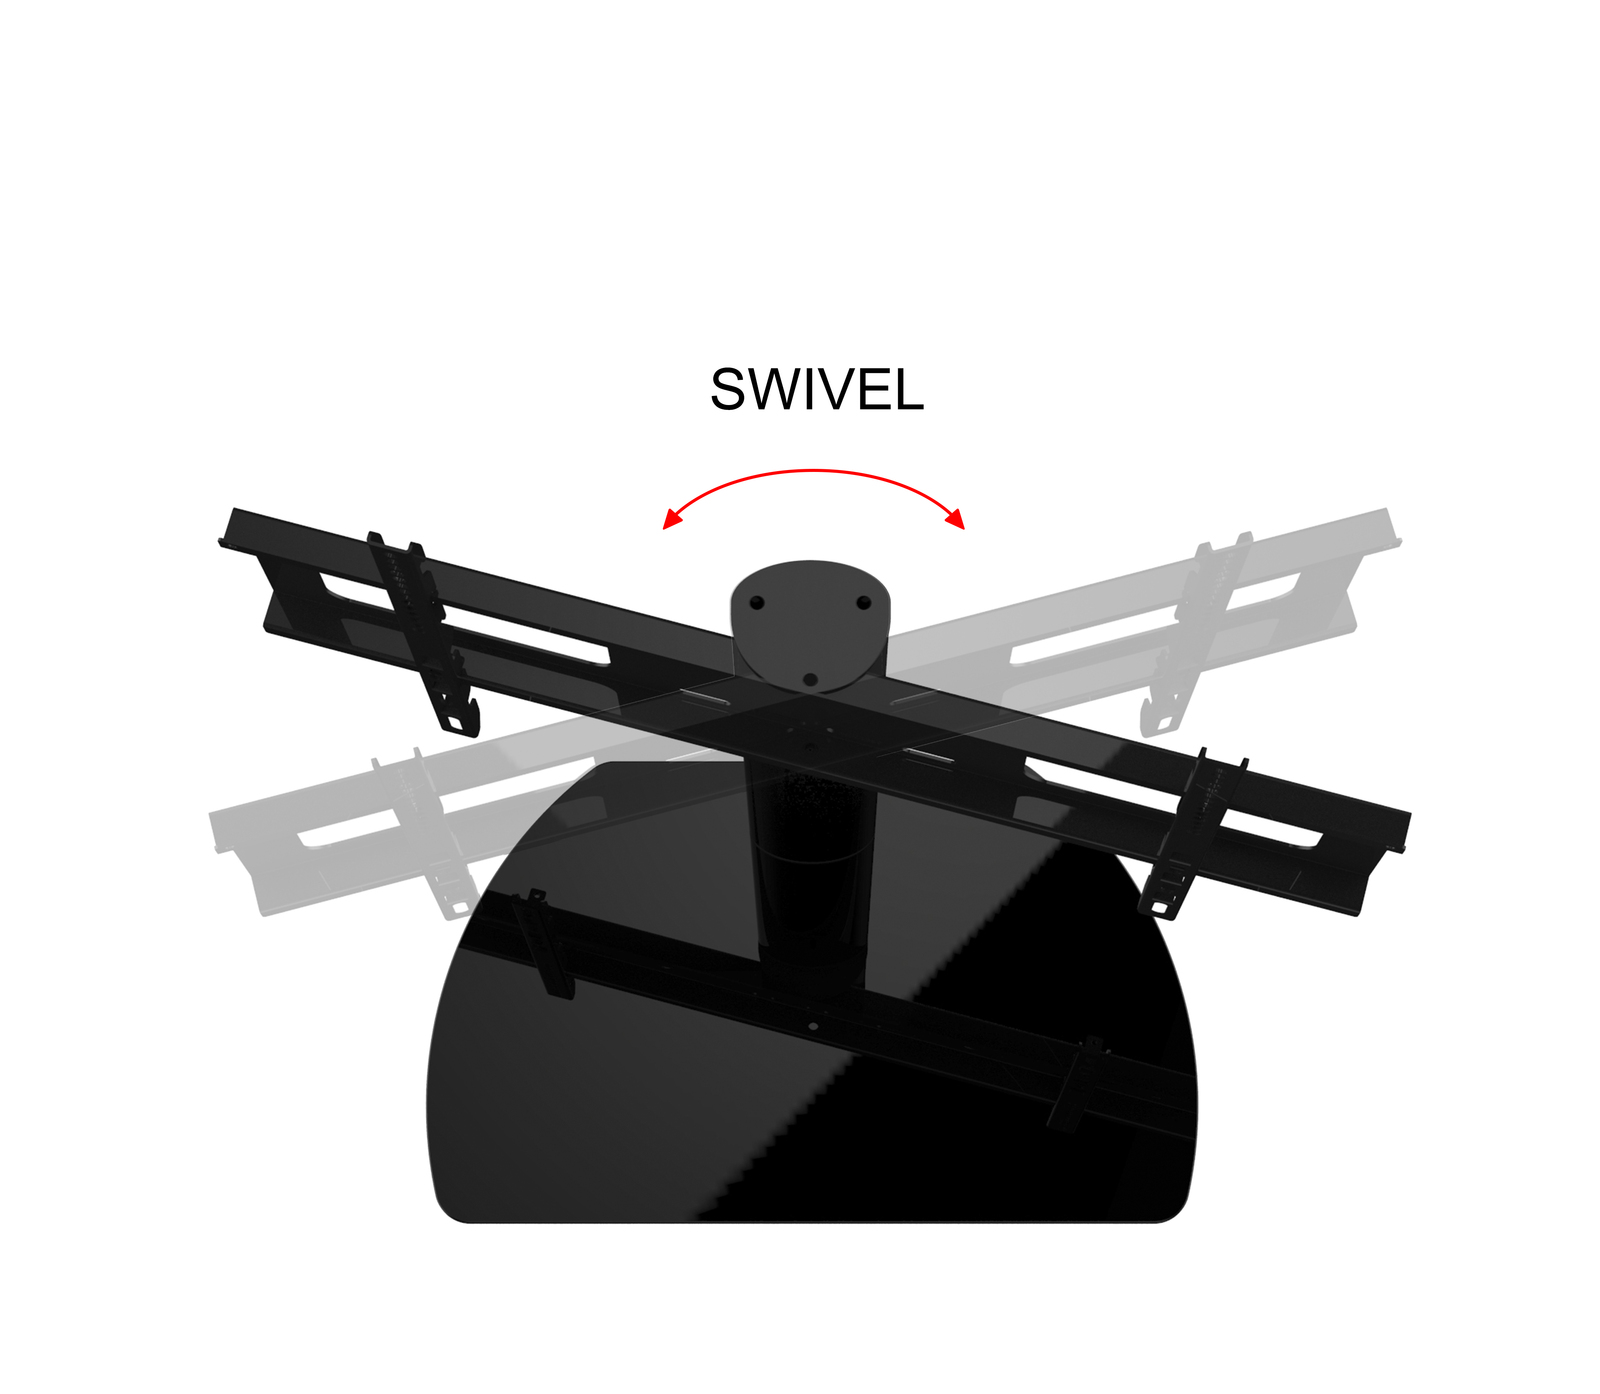 New Universal Replacement Swivel TV Stand/Base for Philips 58PFL4609/F7